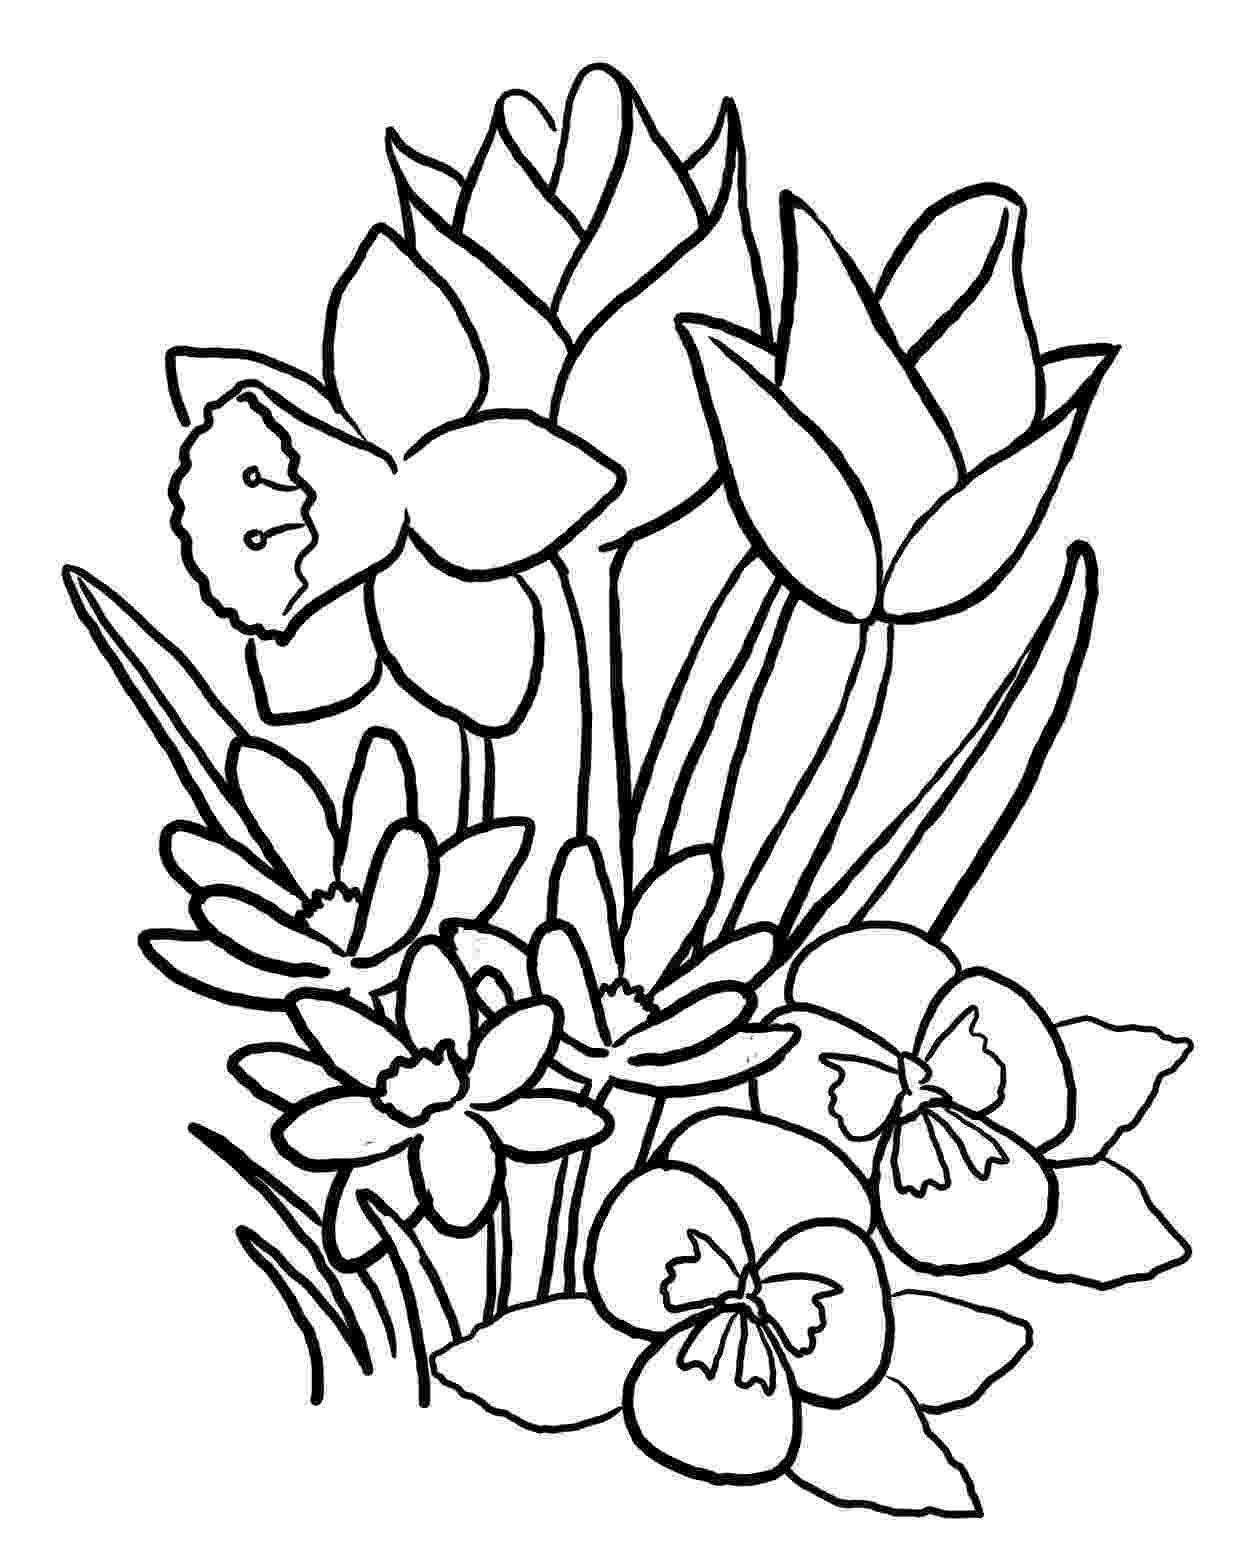 flower coloring sheets for kids free printable flower coloring pages for kids best kids sheets flower for coloring